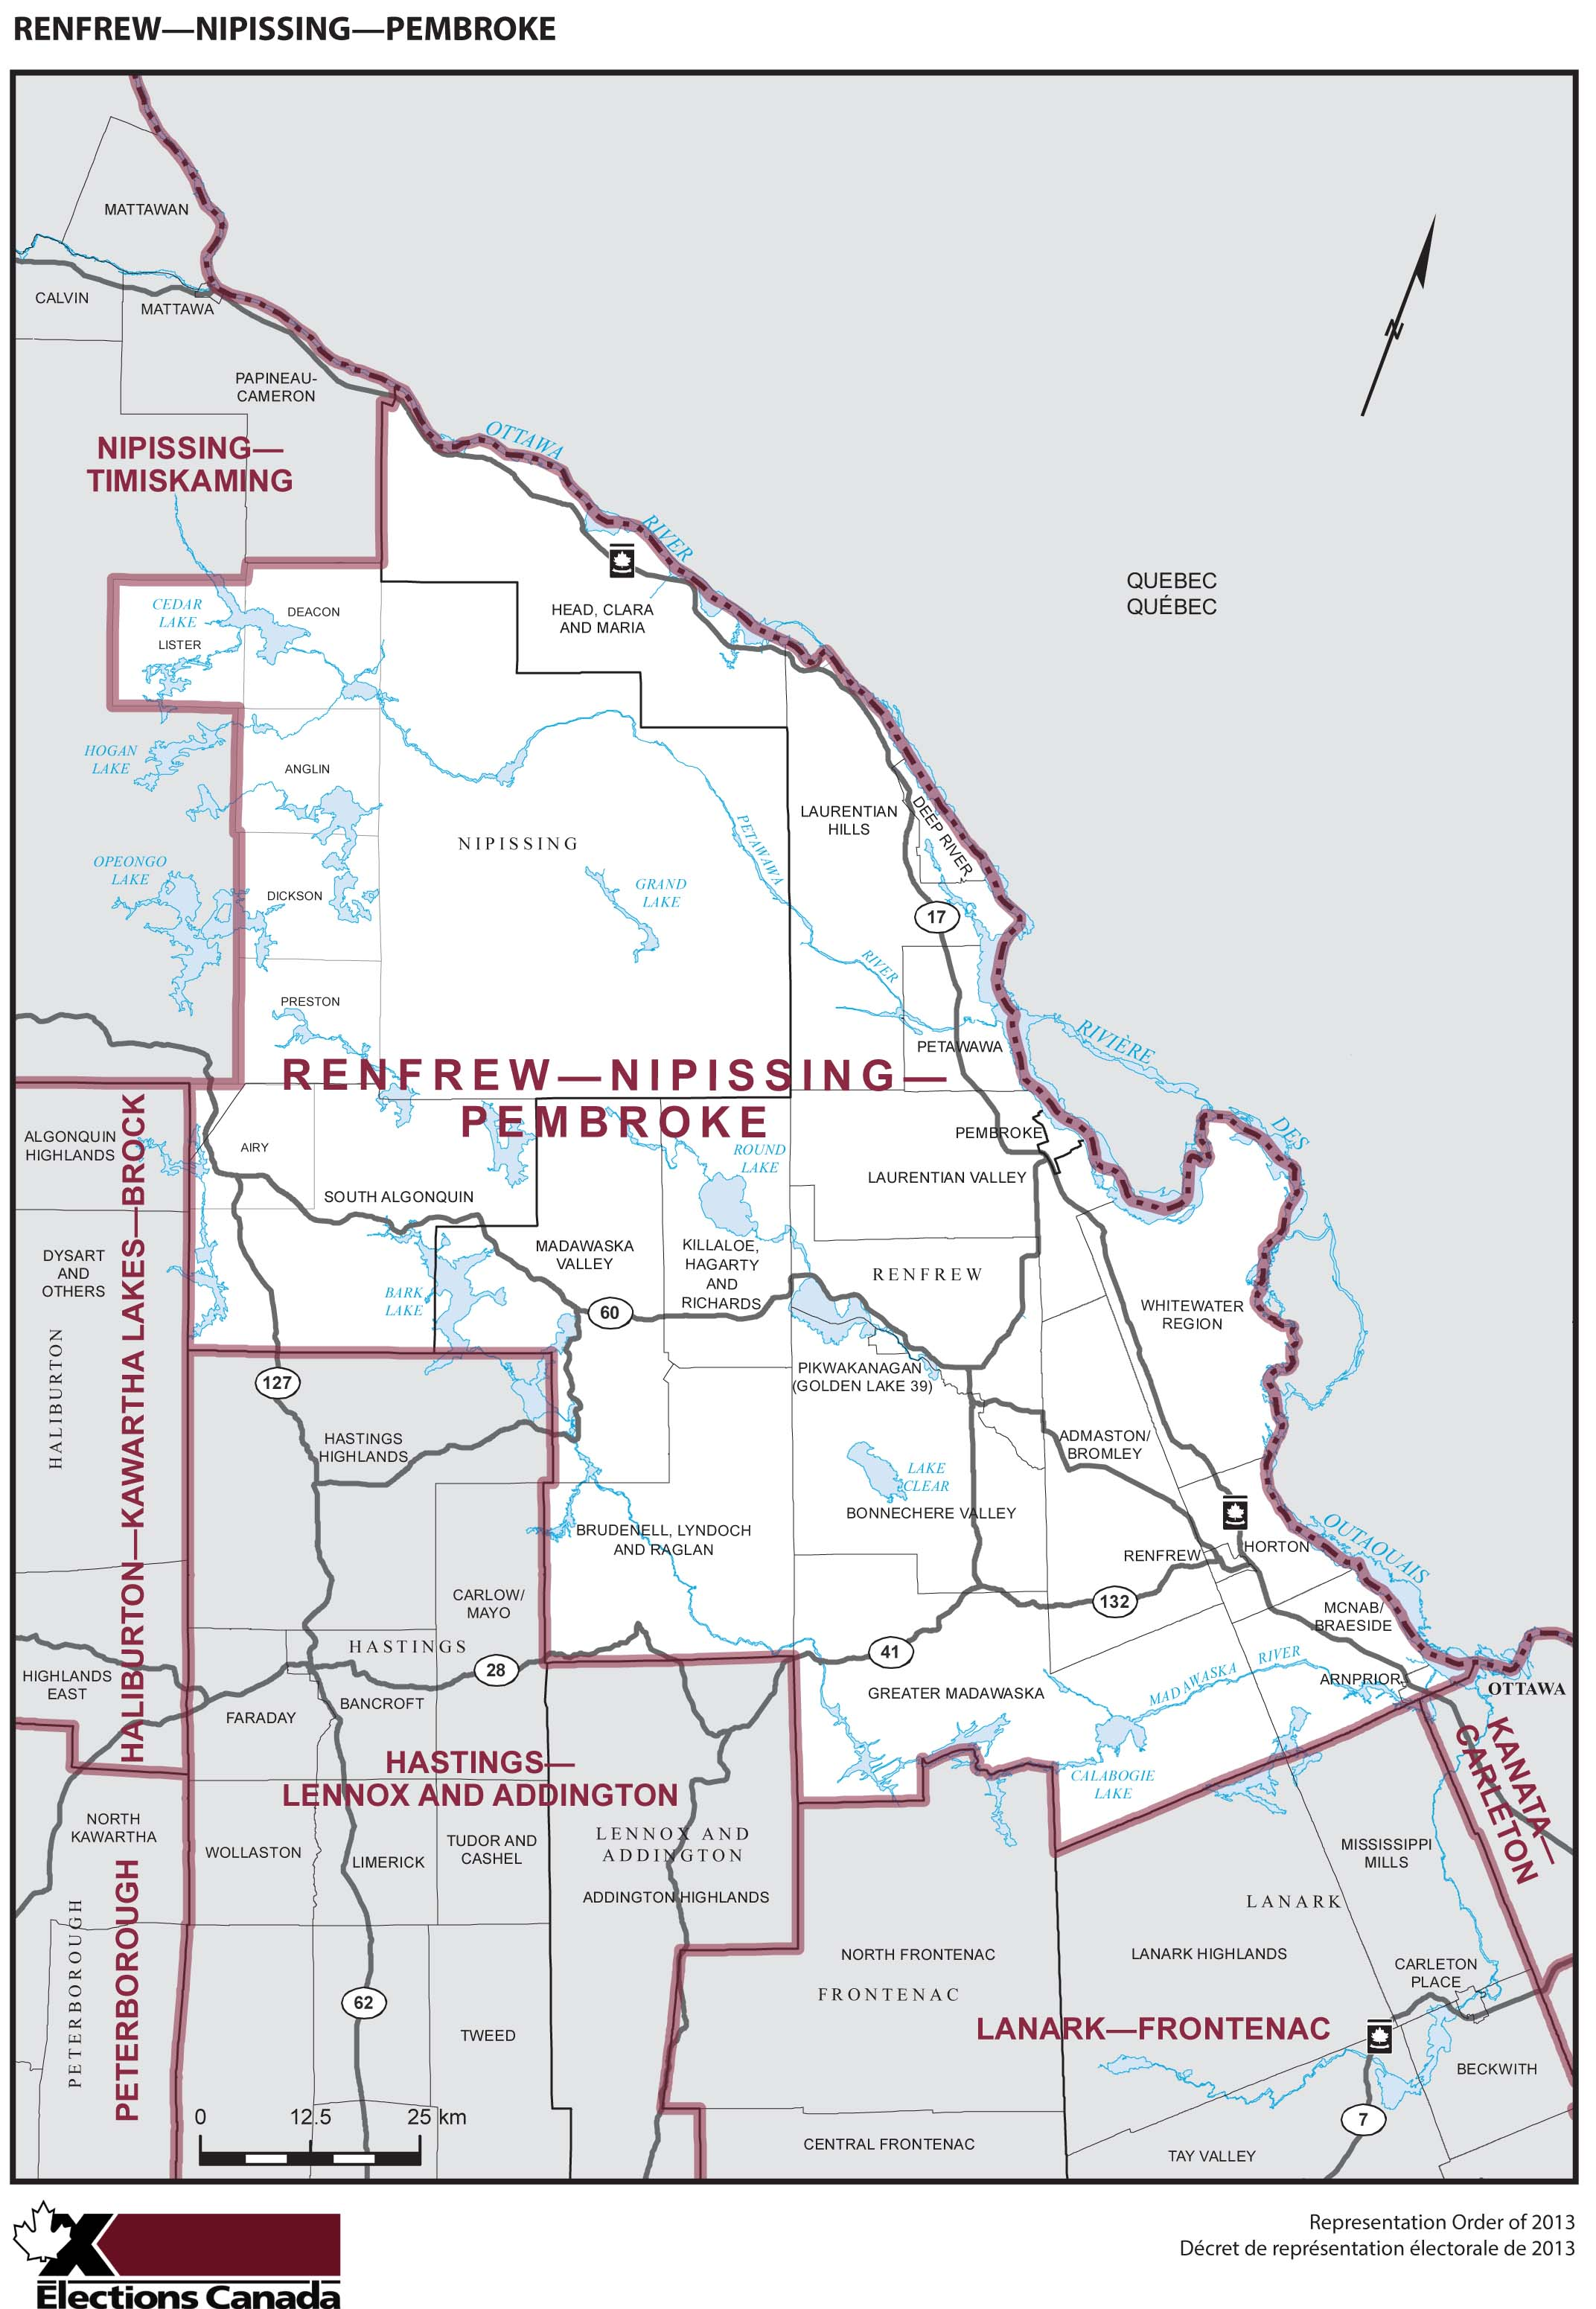 Map: Renfrew--Nipissing--Pembroke, Federal electoral district, 2013 Representation Order (in white), Ontario